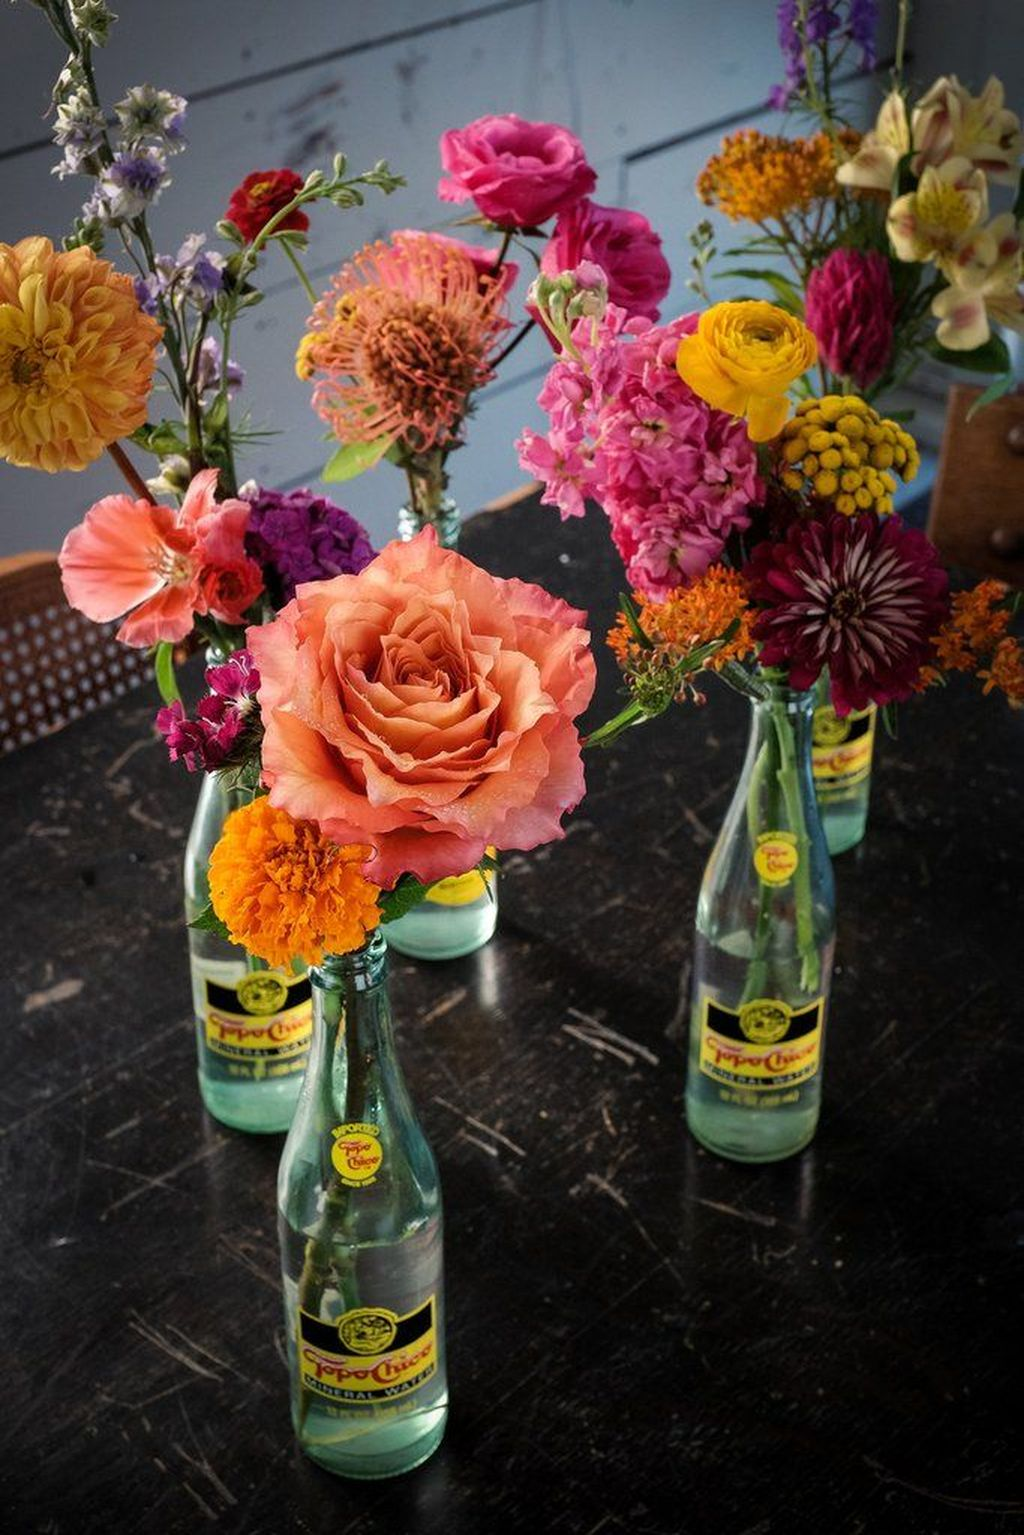 Fabulous Floral Theme Party Decor Ideas Best For Summertime 06